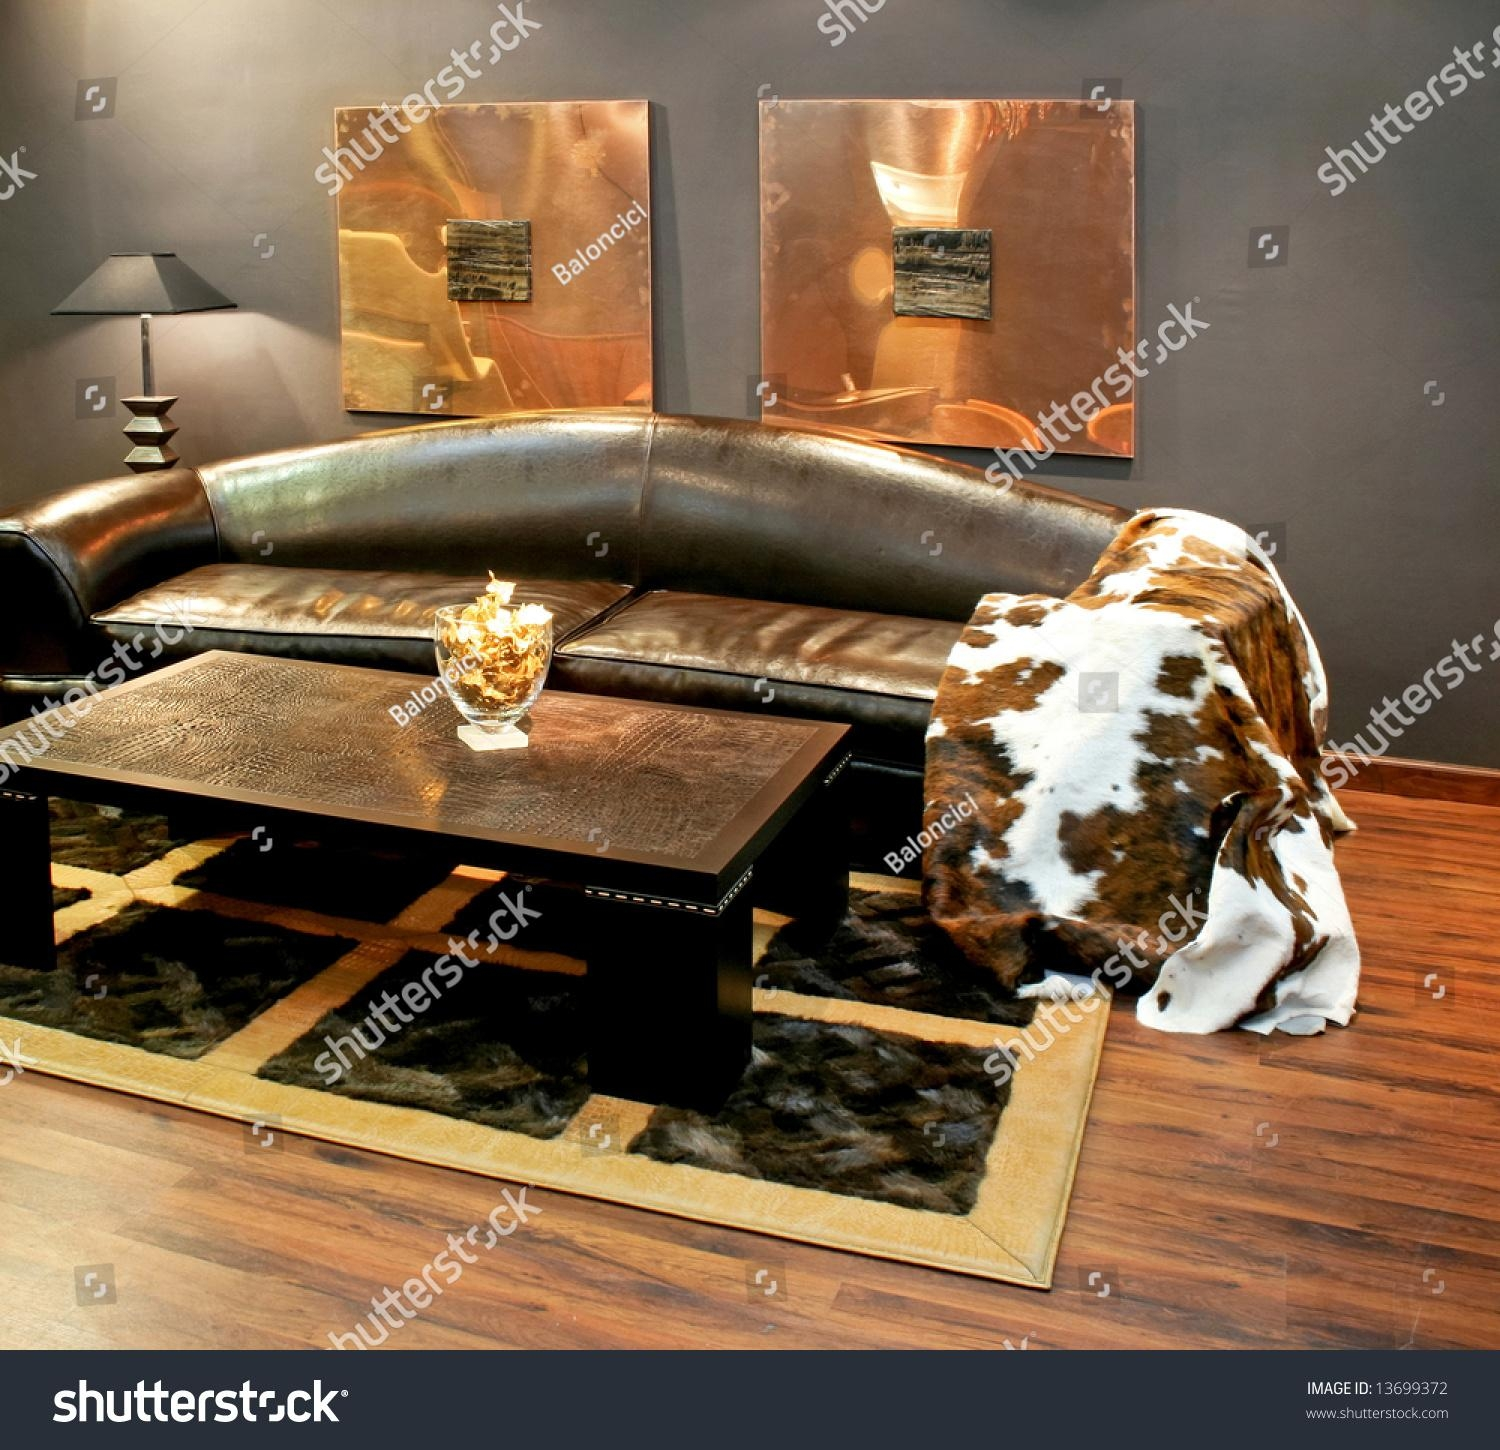 Black Leather Sofa Cowhide Cover Pillows Stock Photo 13699372 Throughout Cowhide Sofas (View 15 of 20)